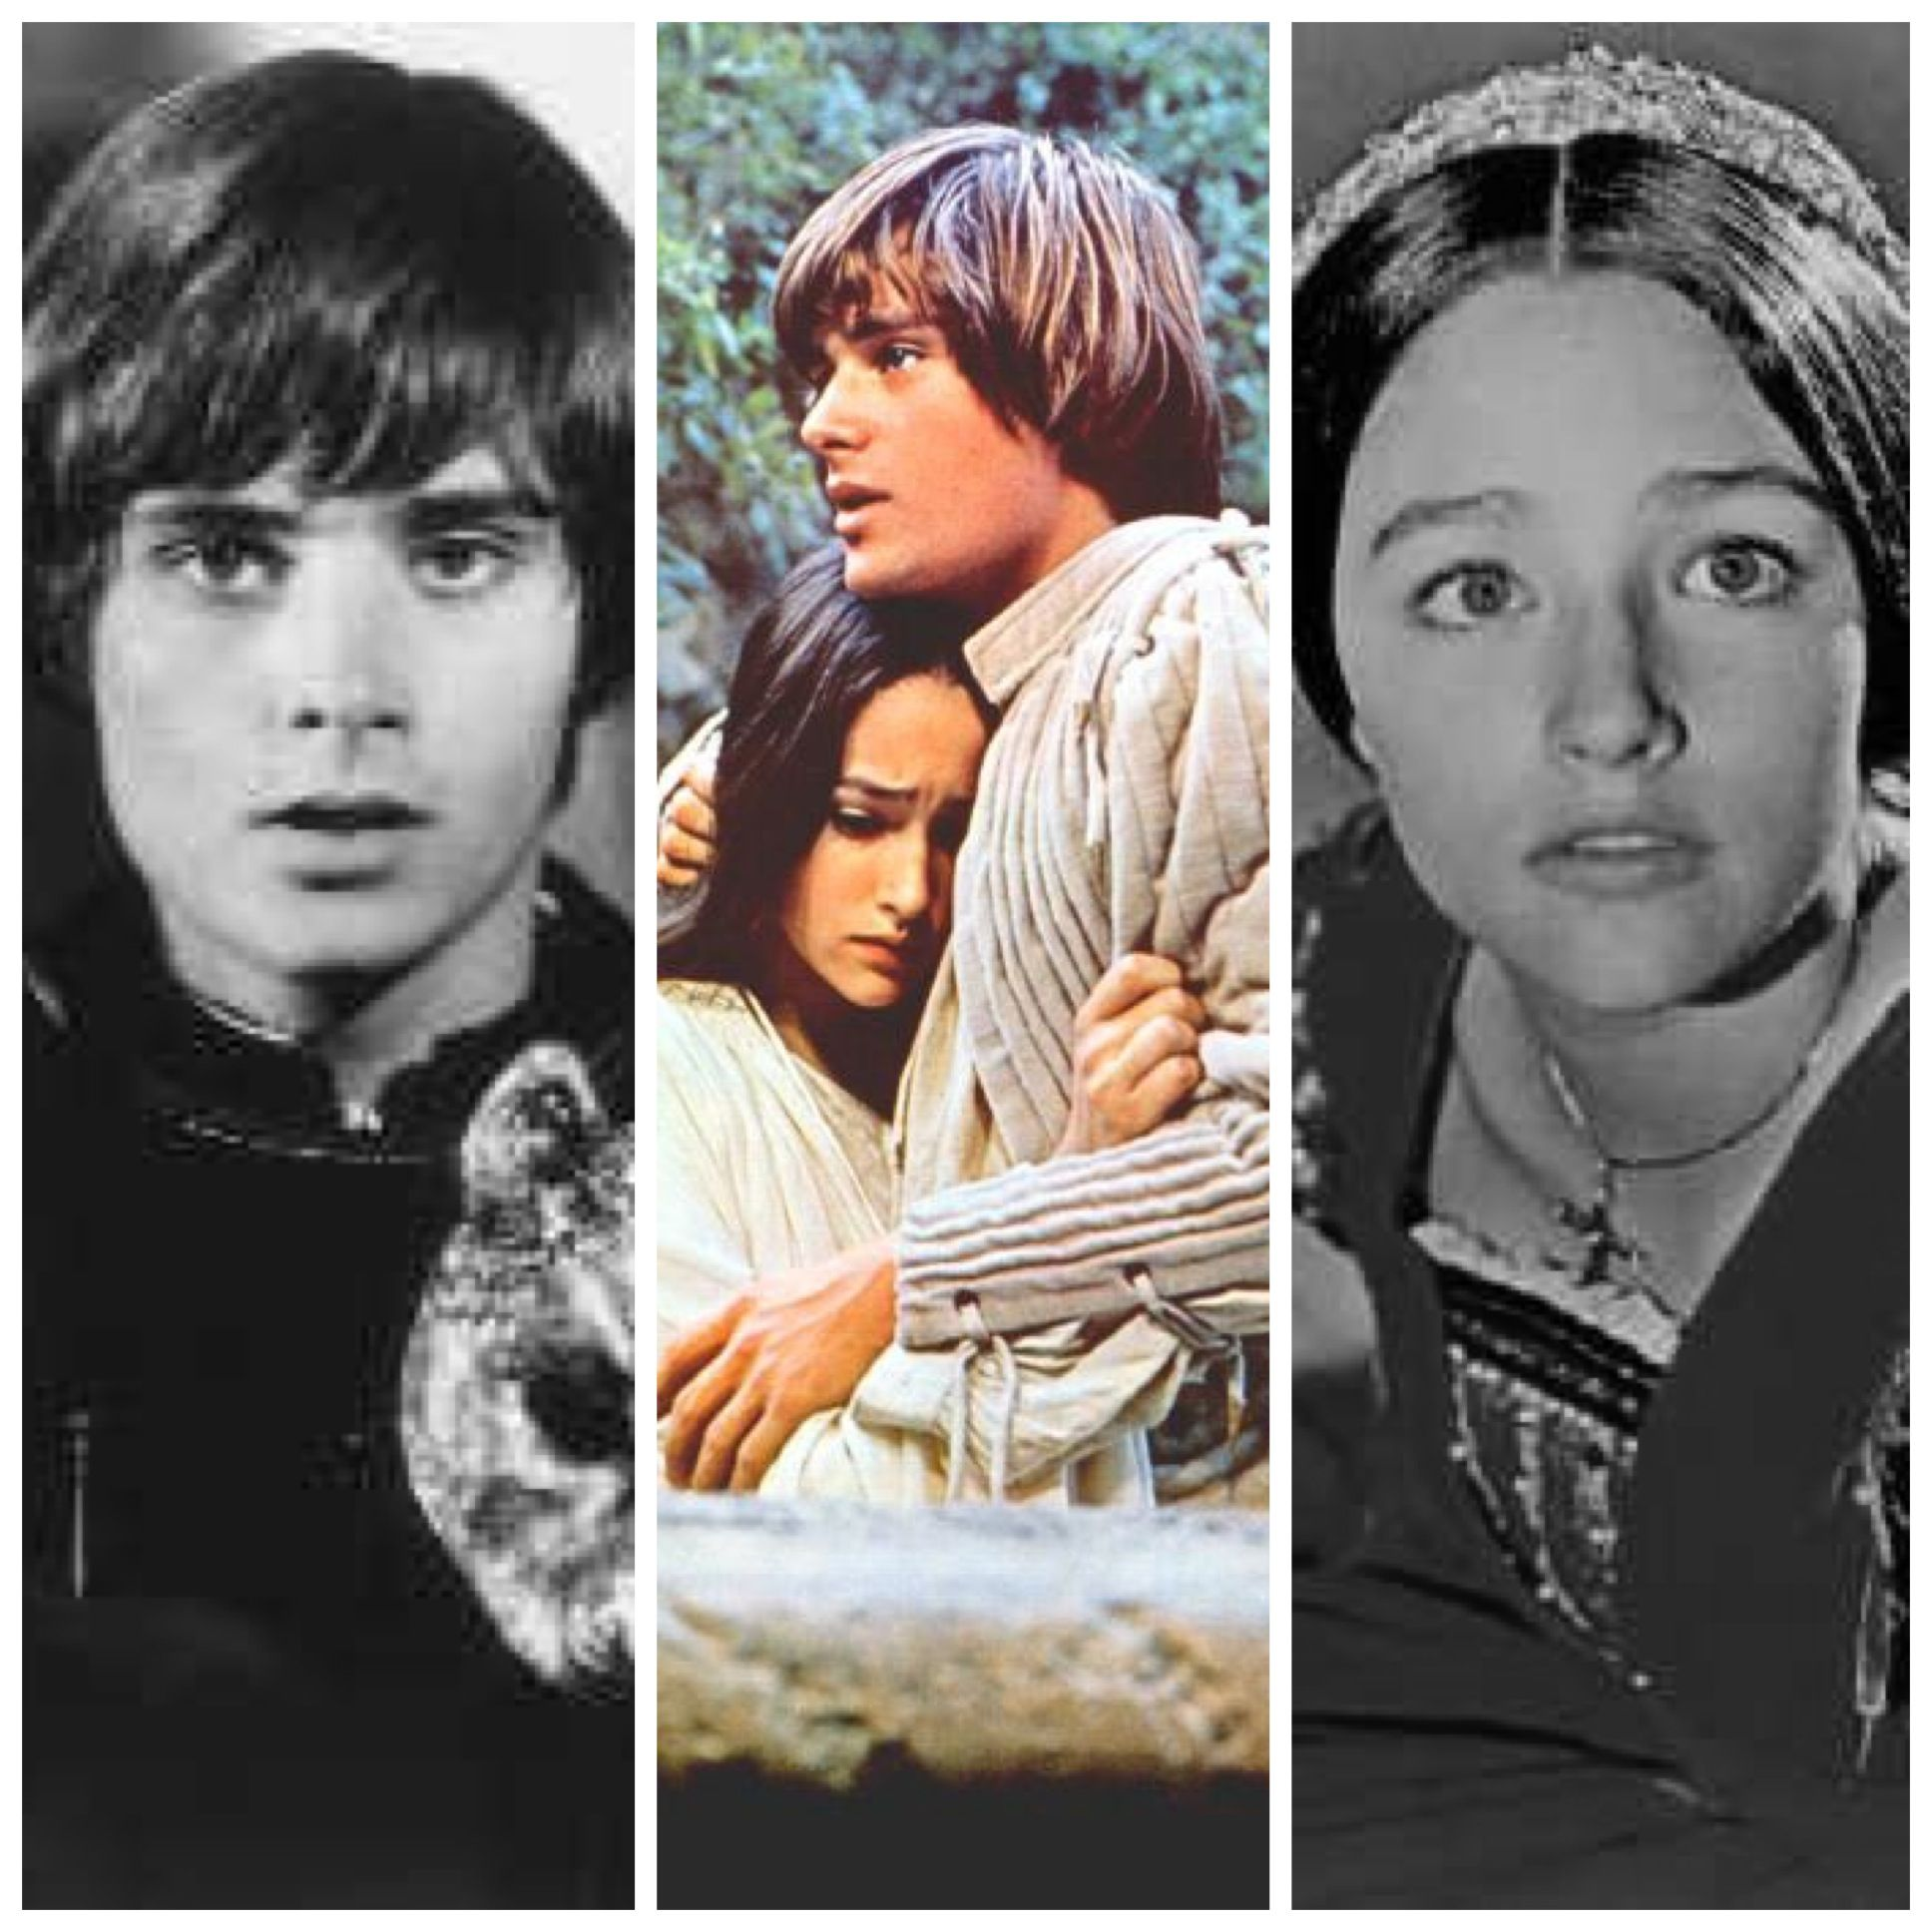 Romeo and Juliet 1968 - Olivia Hussey & Leonard Whiting:  Love this movie! Franco Zefferelli definitely knew what he was doing when he cast these two...Still have the vinyl soundtrack!! ♥